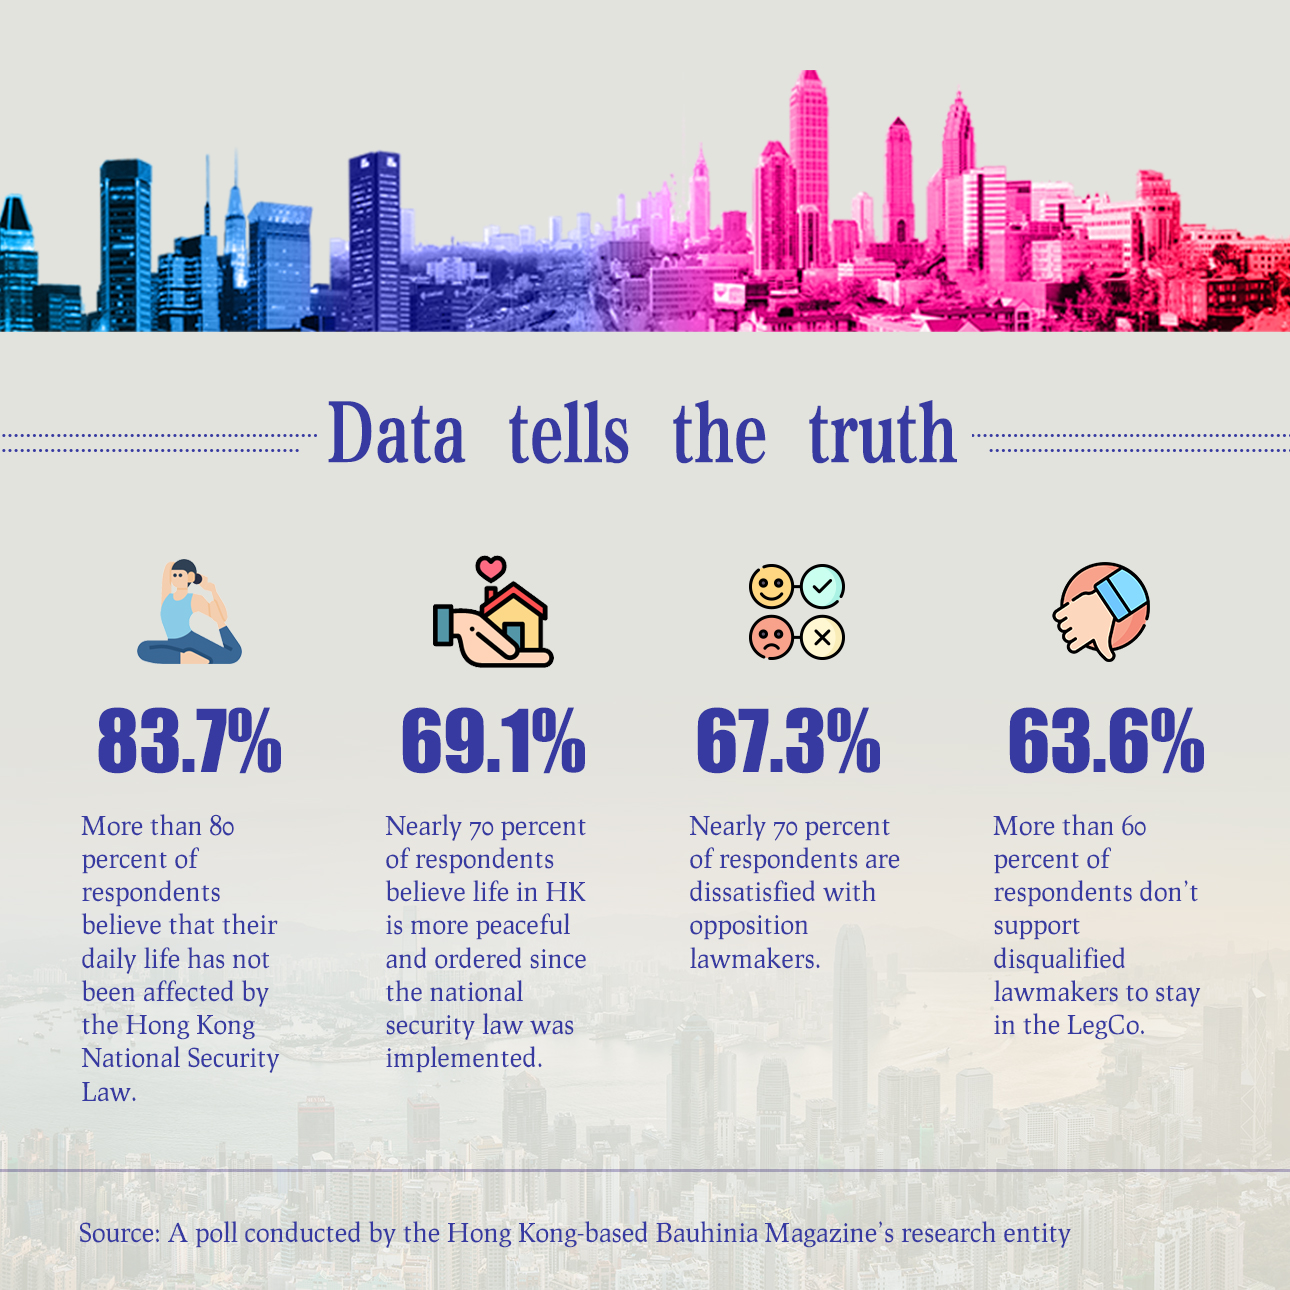 Poster: Data tells the truth about Hong Kong